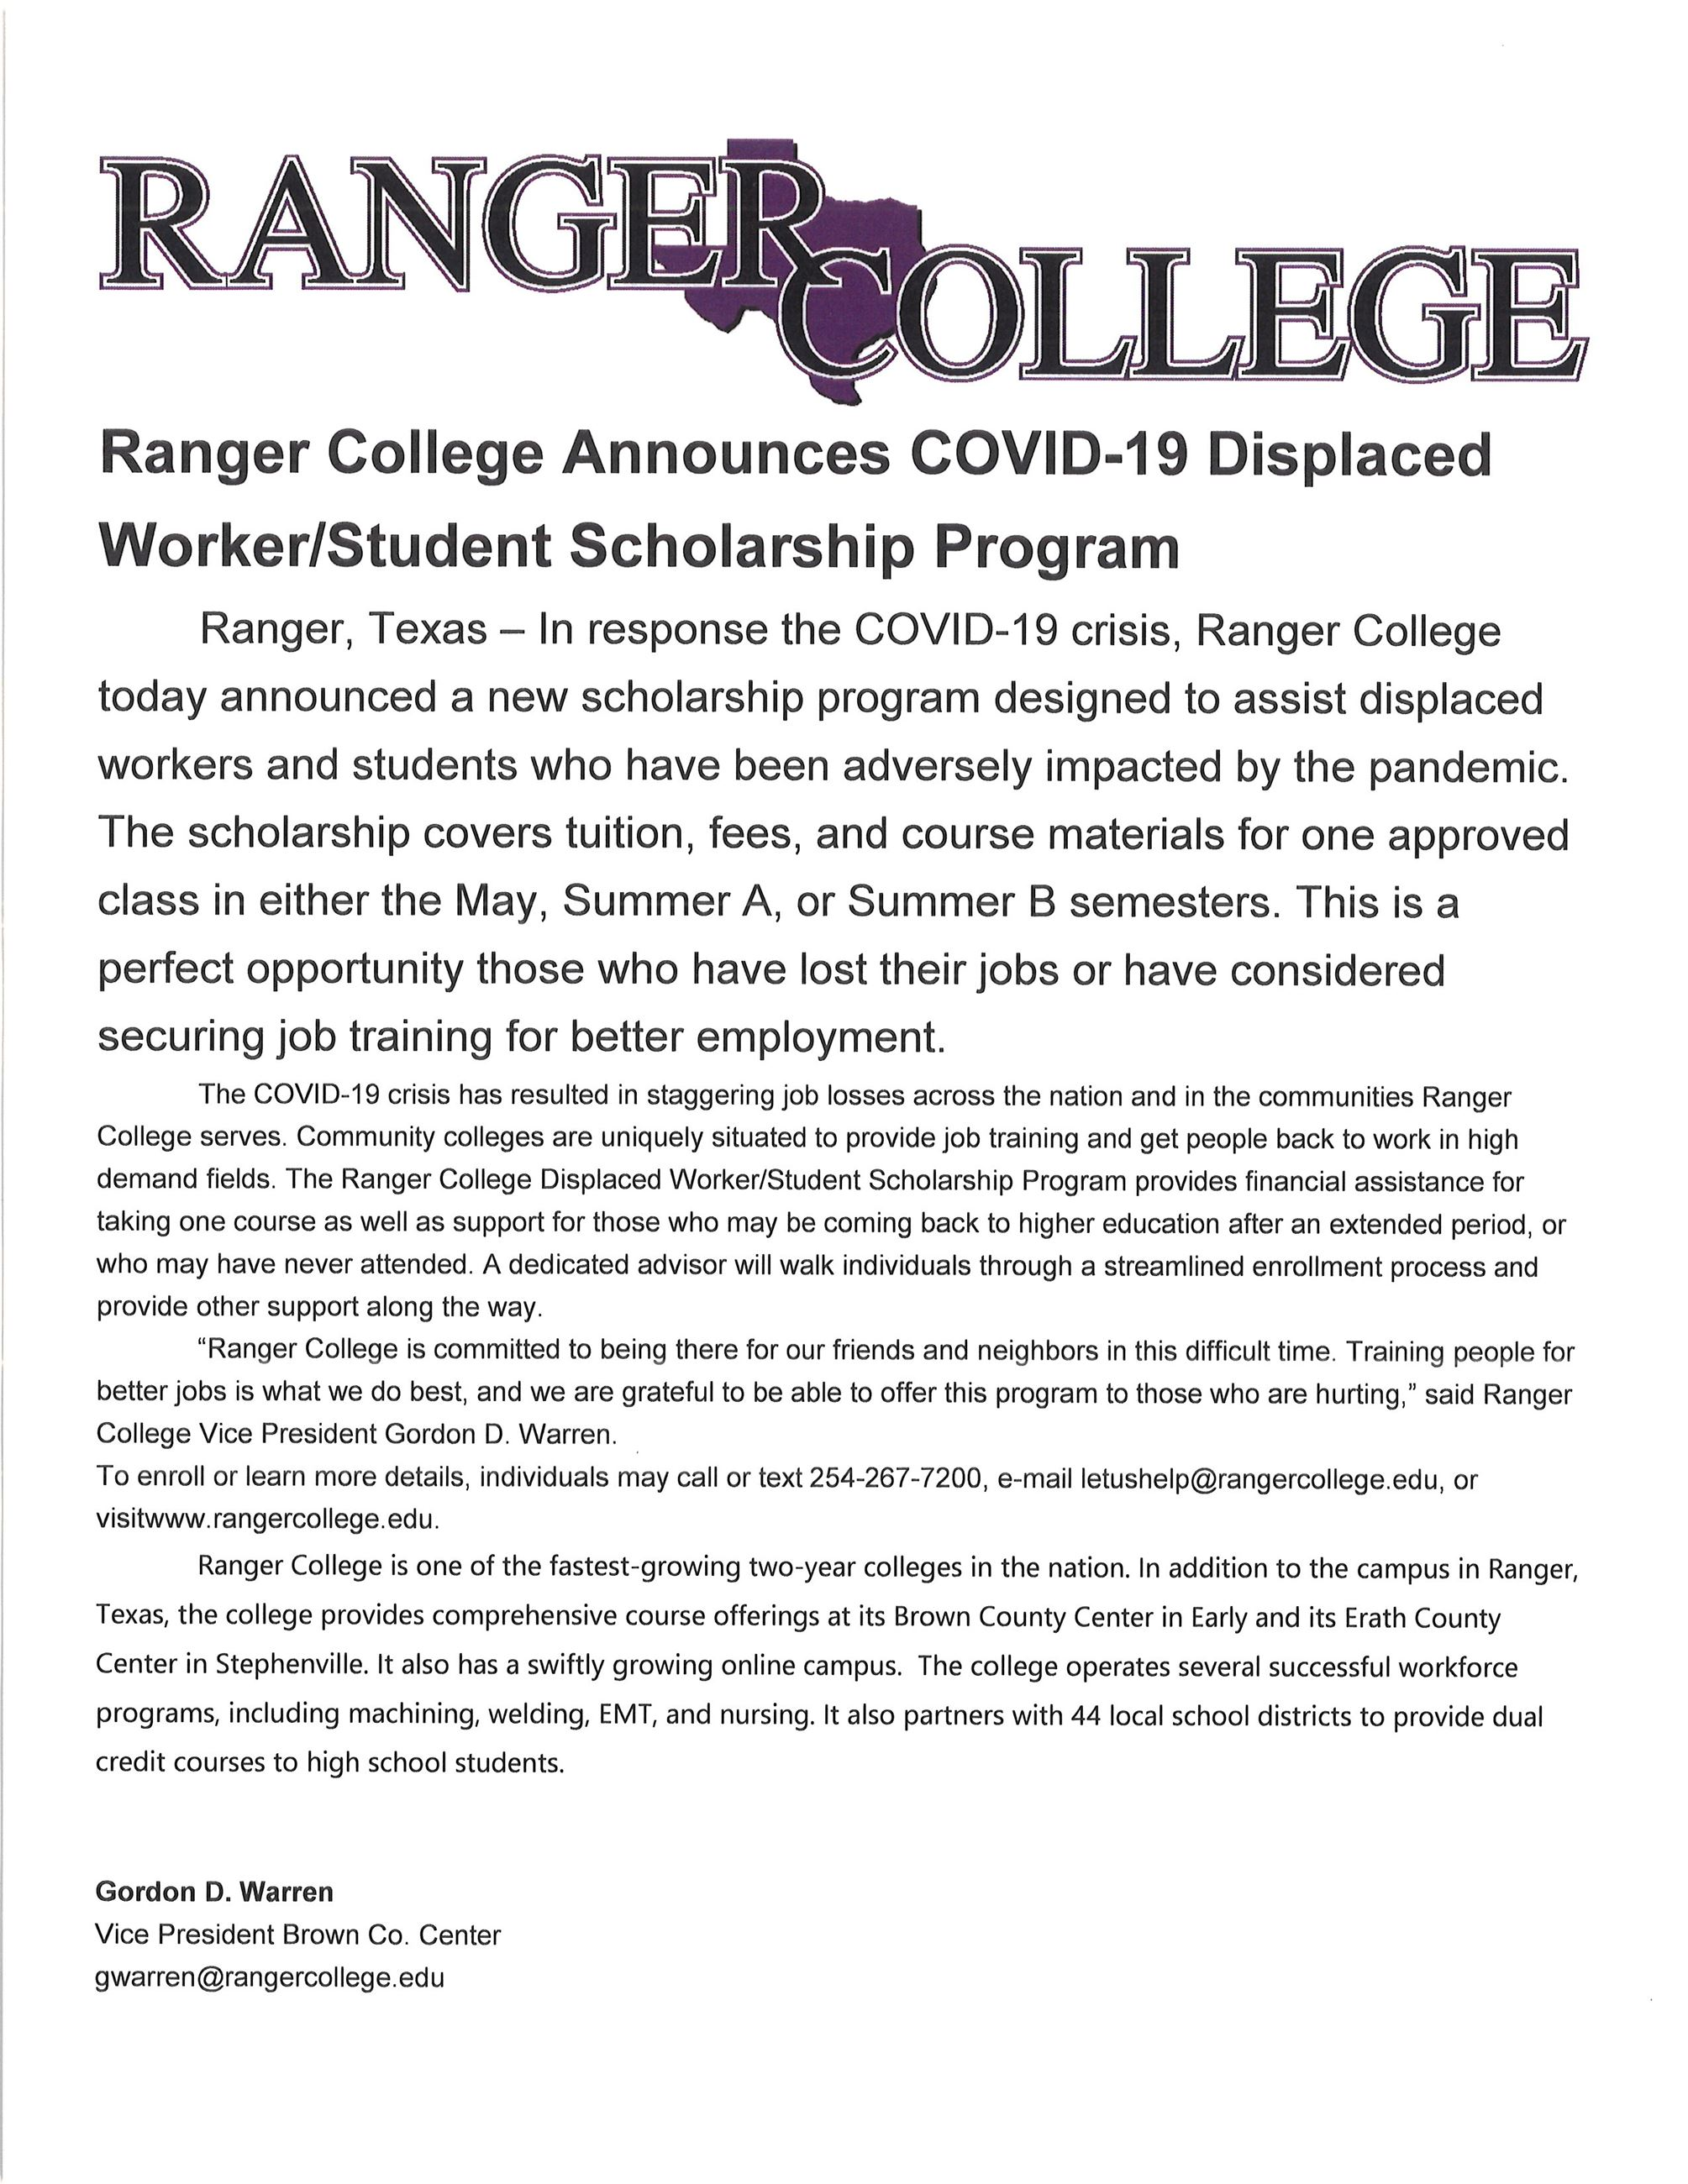 Ranger College Free Tuition